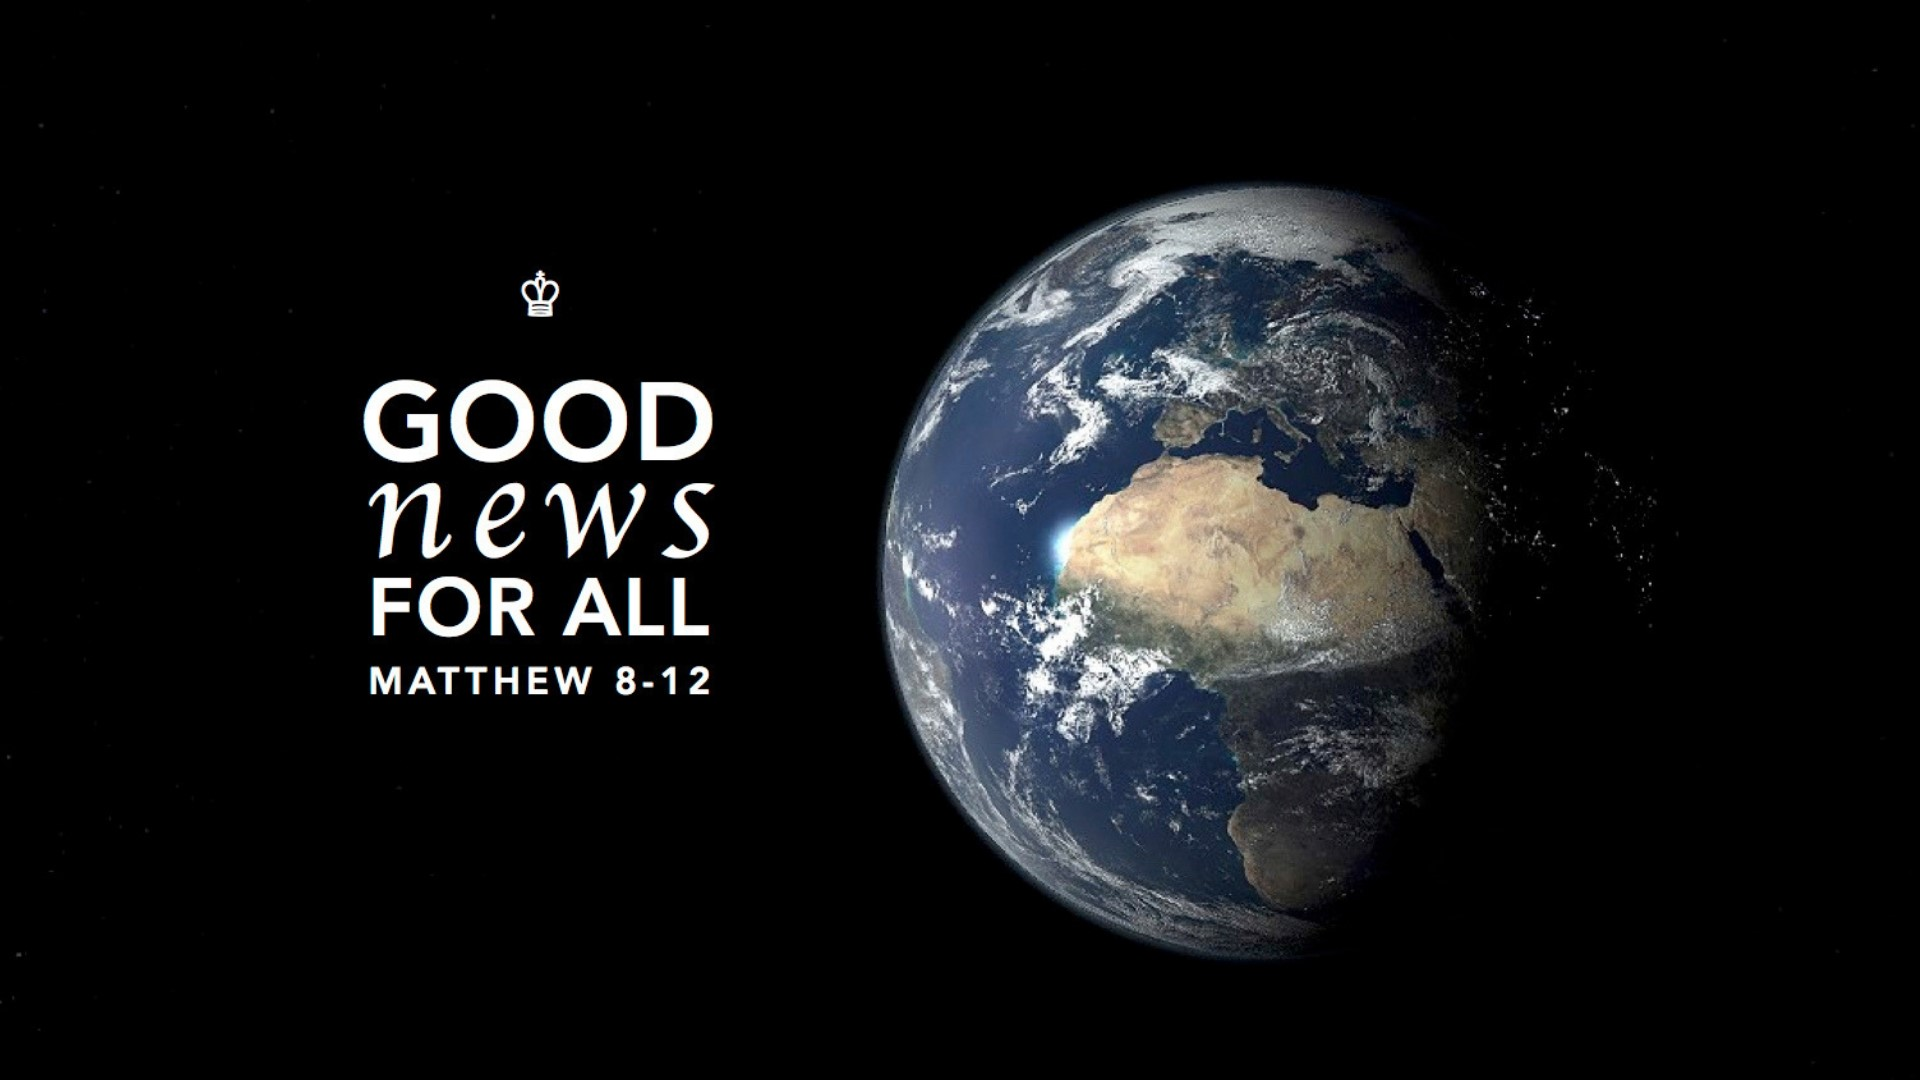 Good news for all – Matthew 8-12